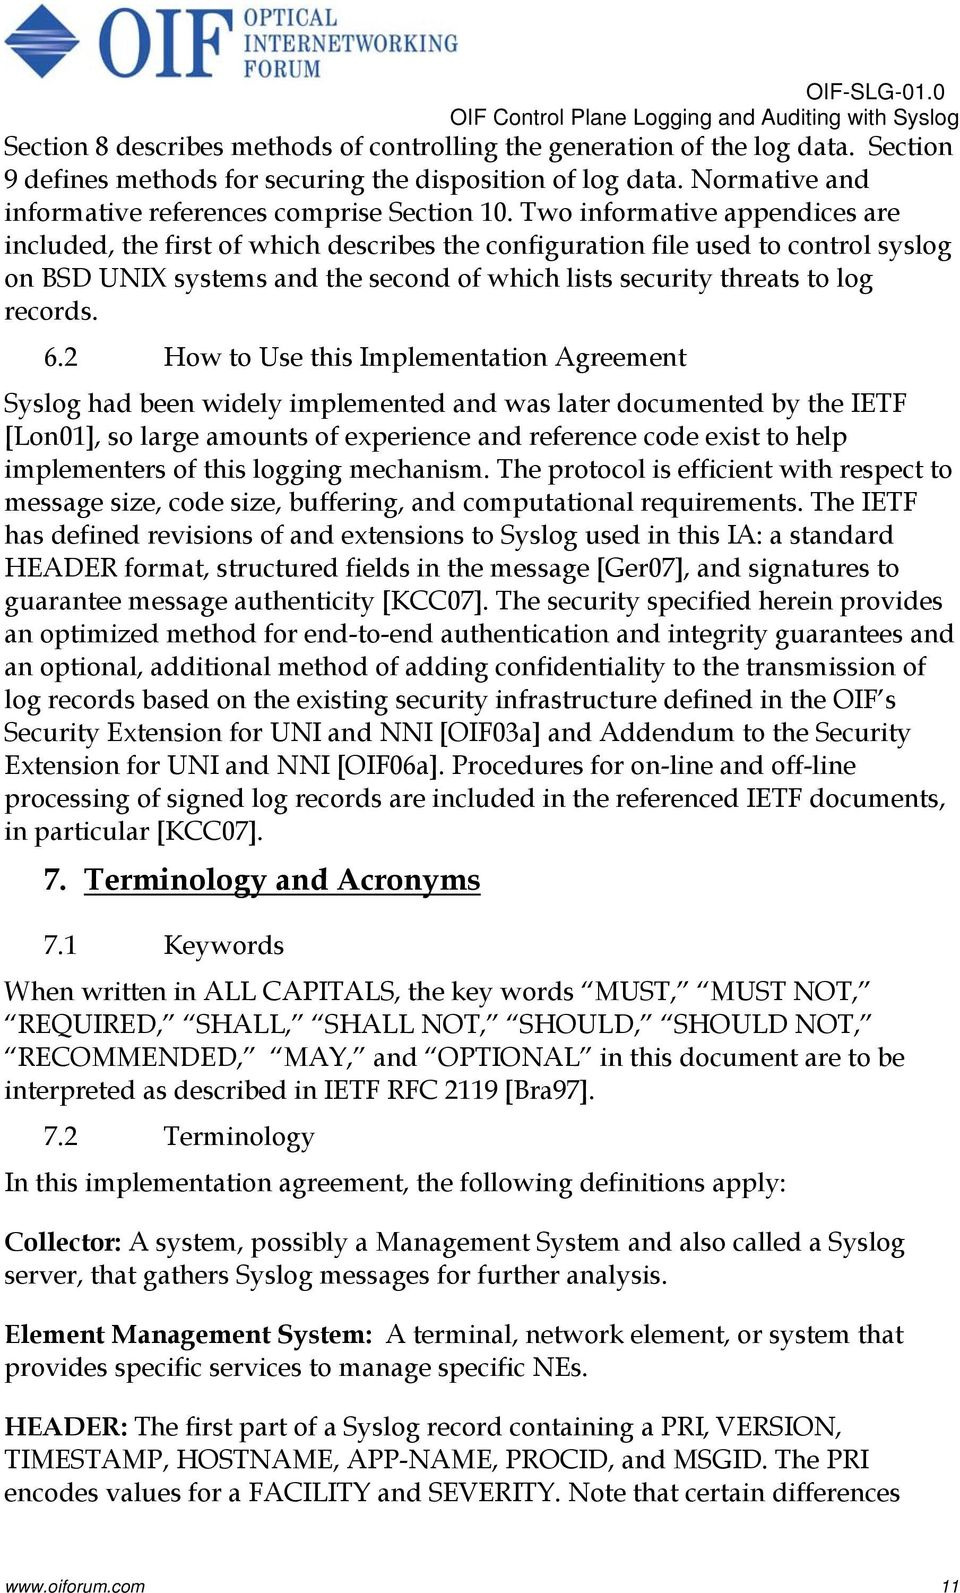 6.2 How to Use this Implementation Agreement Syslog had been widely implemented and was later documented by the IETF [Lon01], so large amounts of experience and reference code exist to help